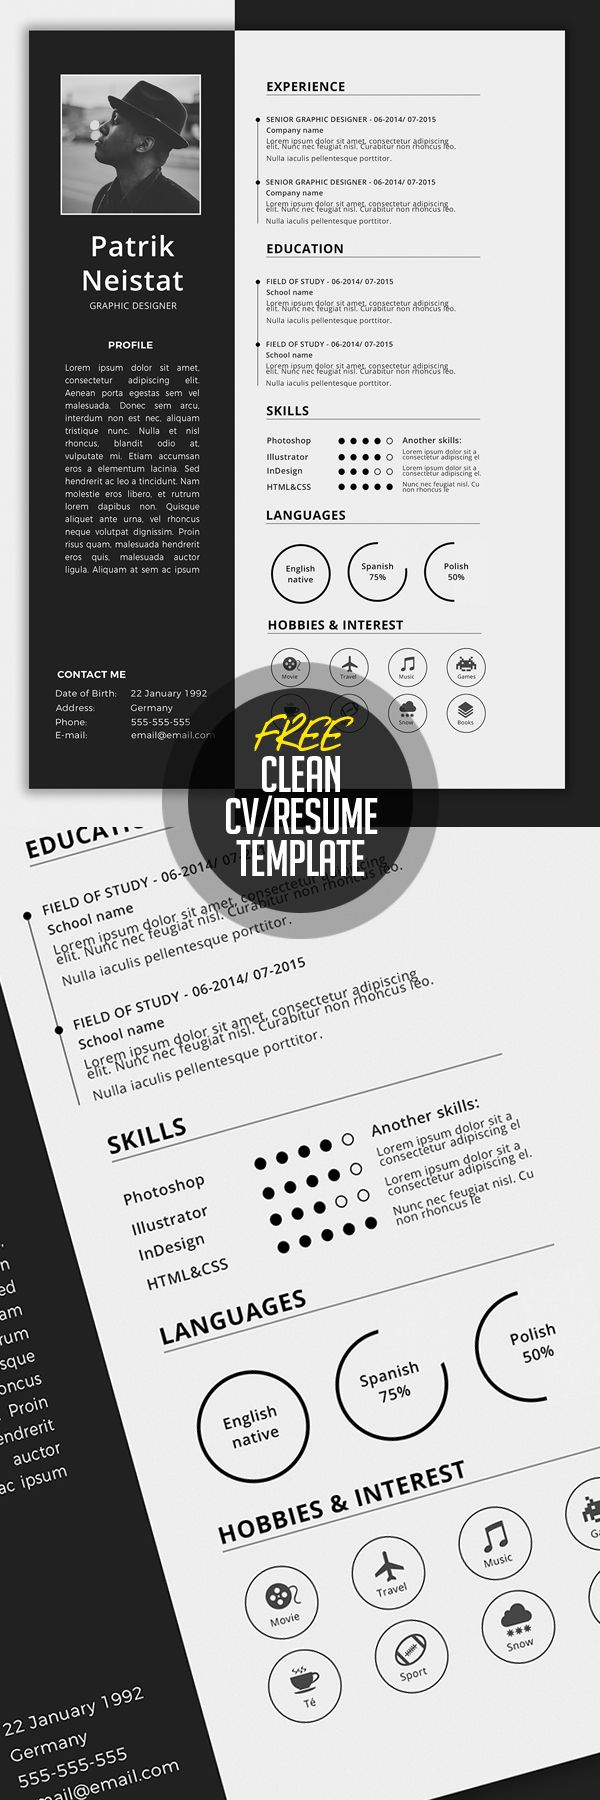 Simple CV/Resume Template Free Download #resumetemplate #minimalresume #resumedesign #freebie #psdtemplate